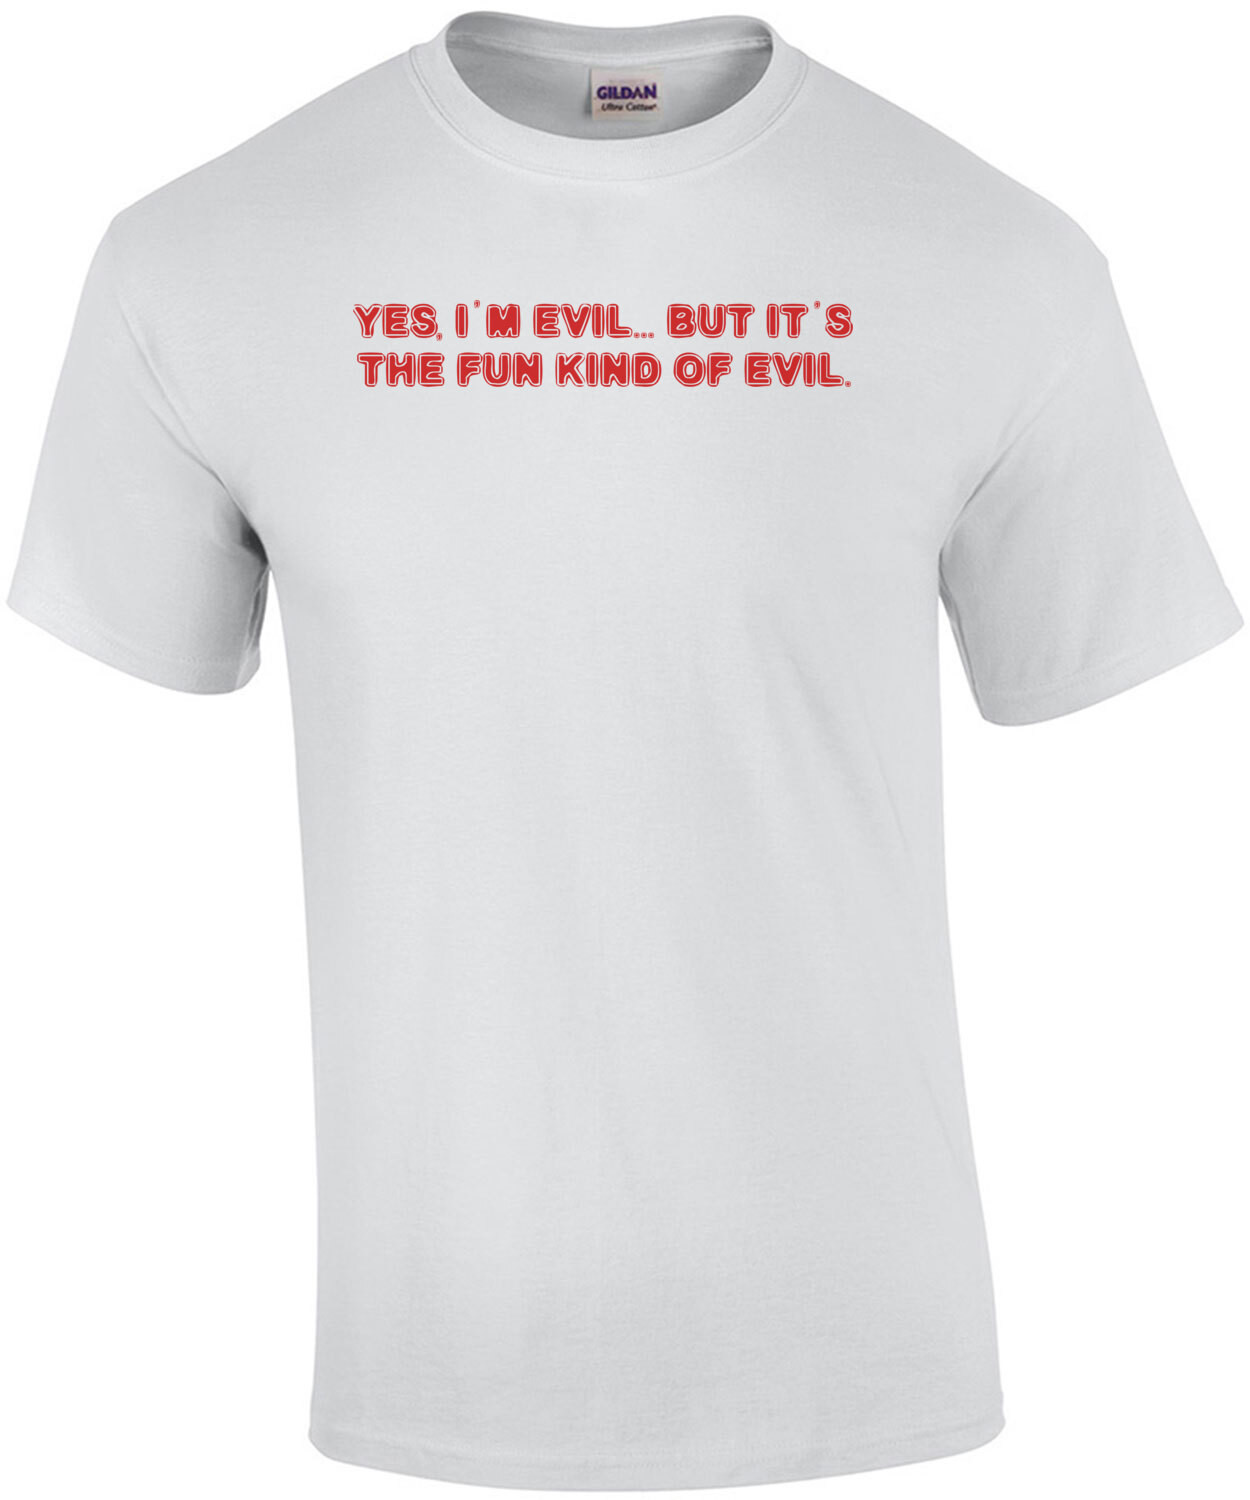 YES, I'M EVIL... BUT IT'S THE FUN KIND OF EVIL. Shirt